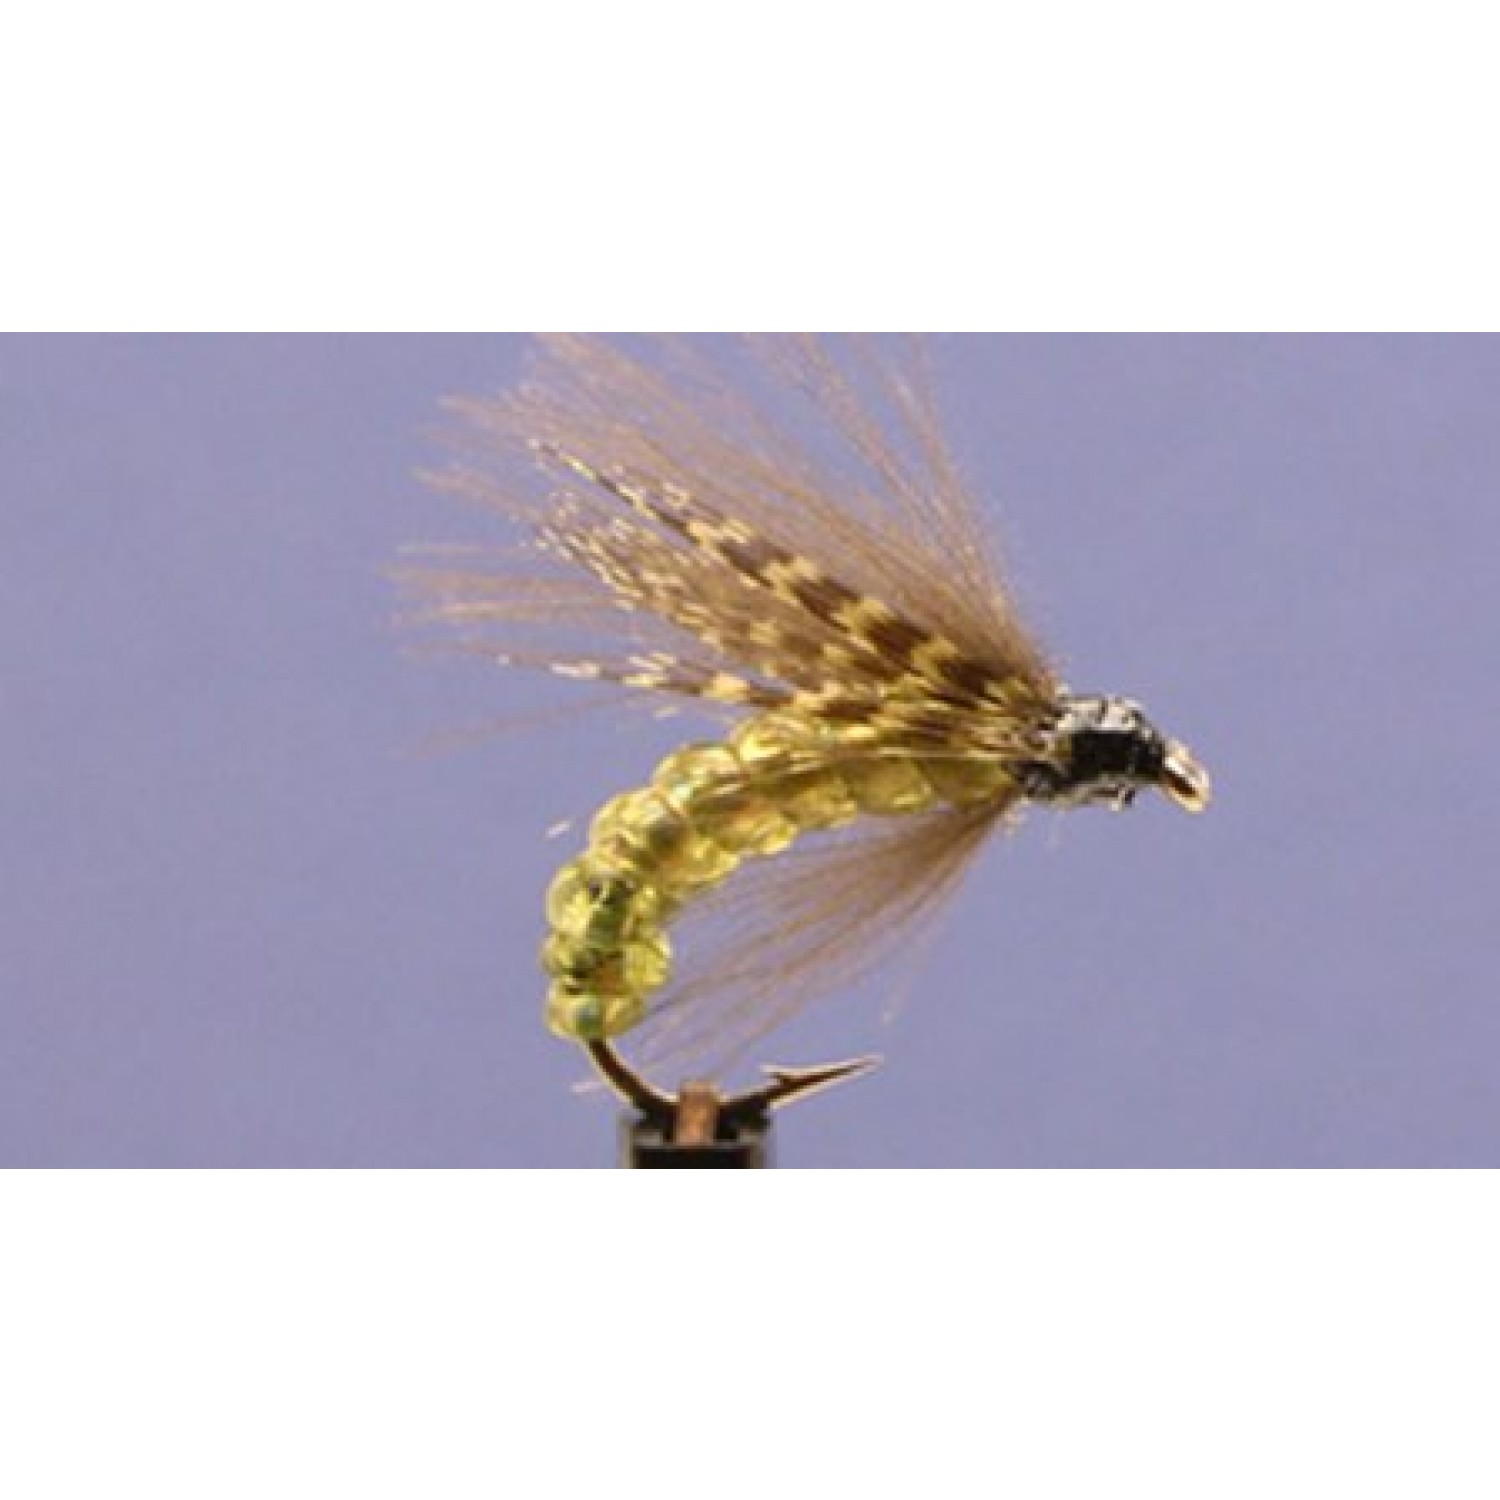 Europe - Olive CDC Caddis Emerger